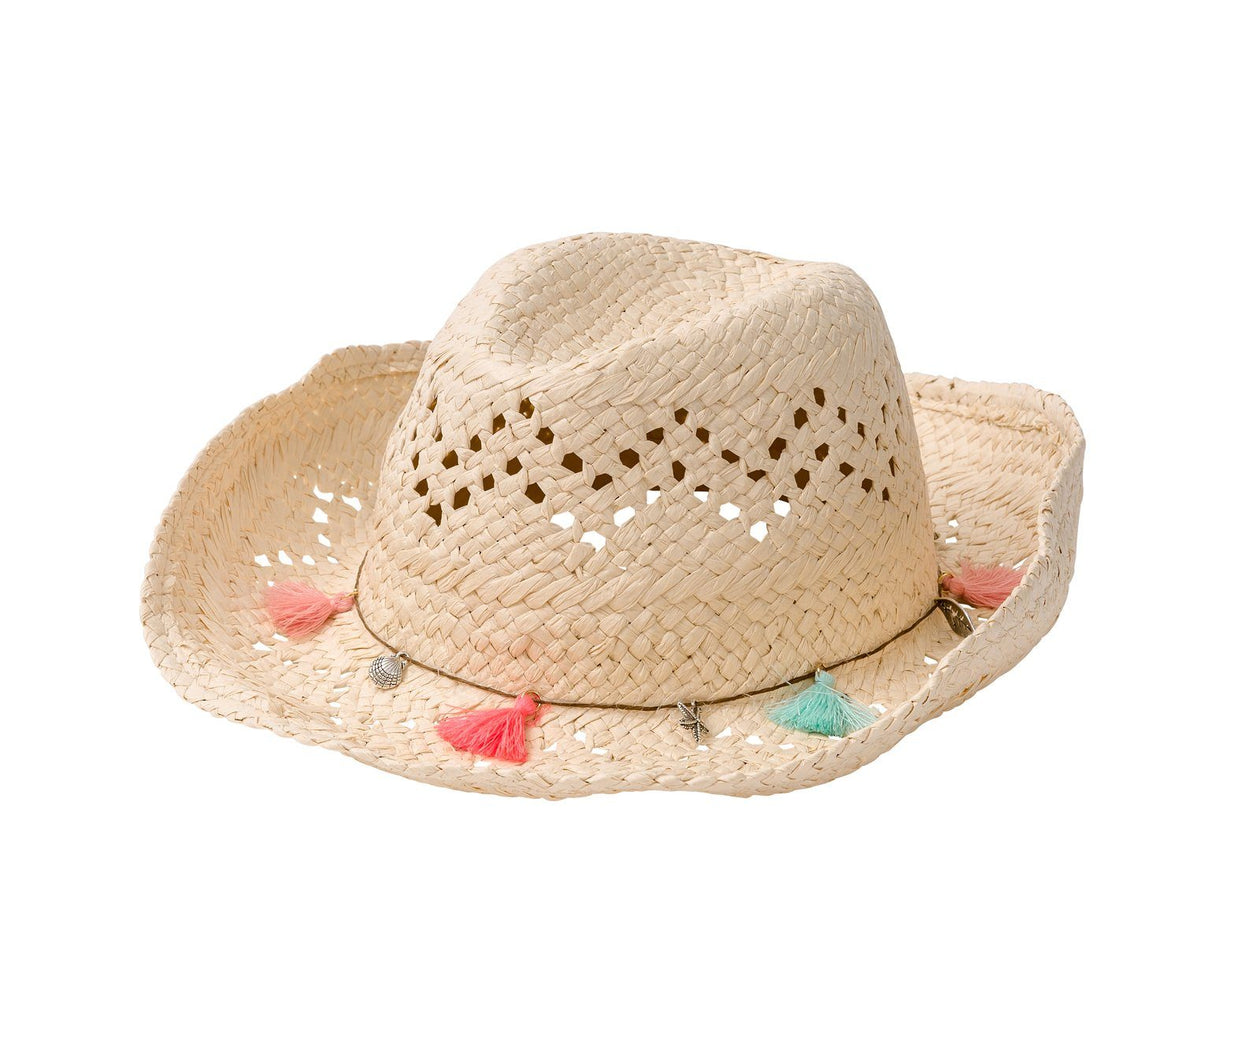 Tassel Cowgirl Sunhat by Snapper Rock